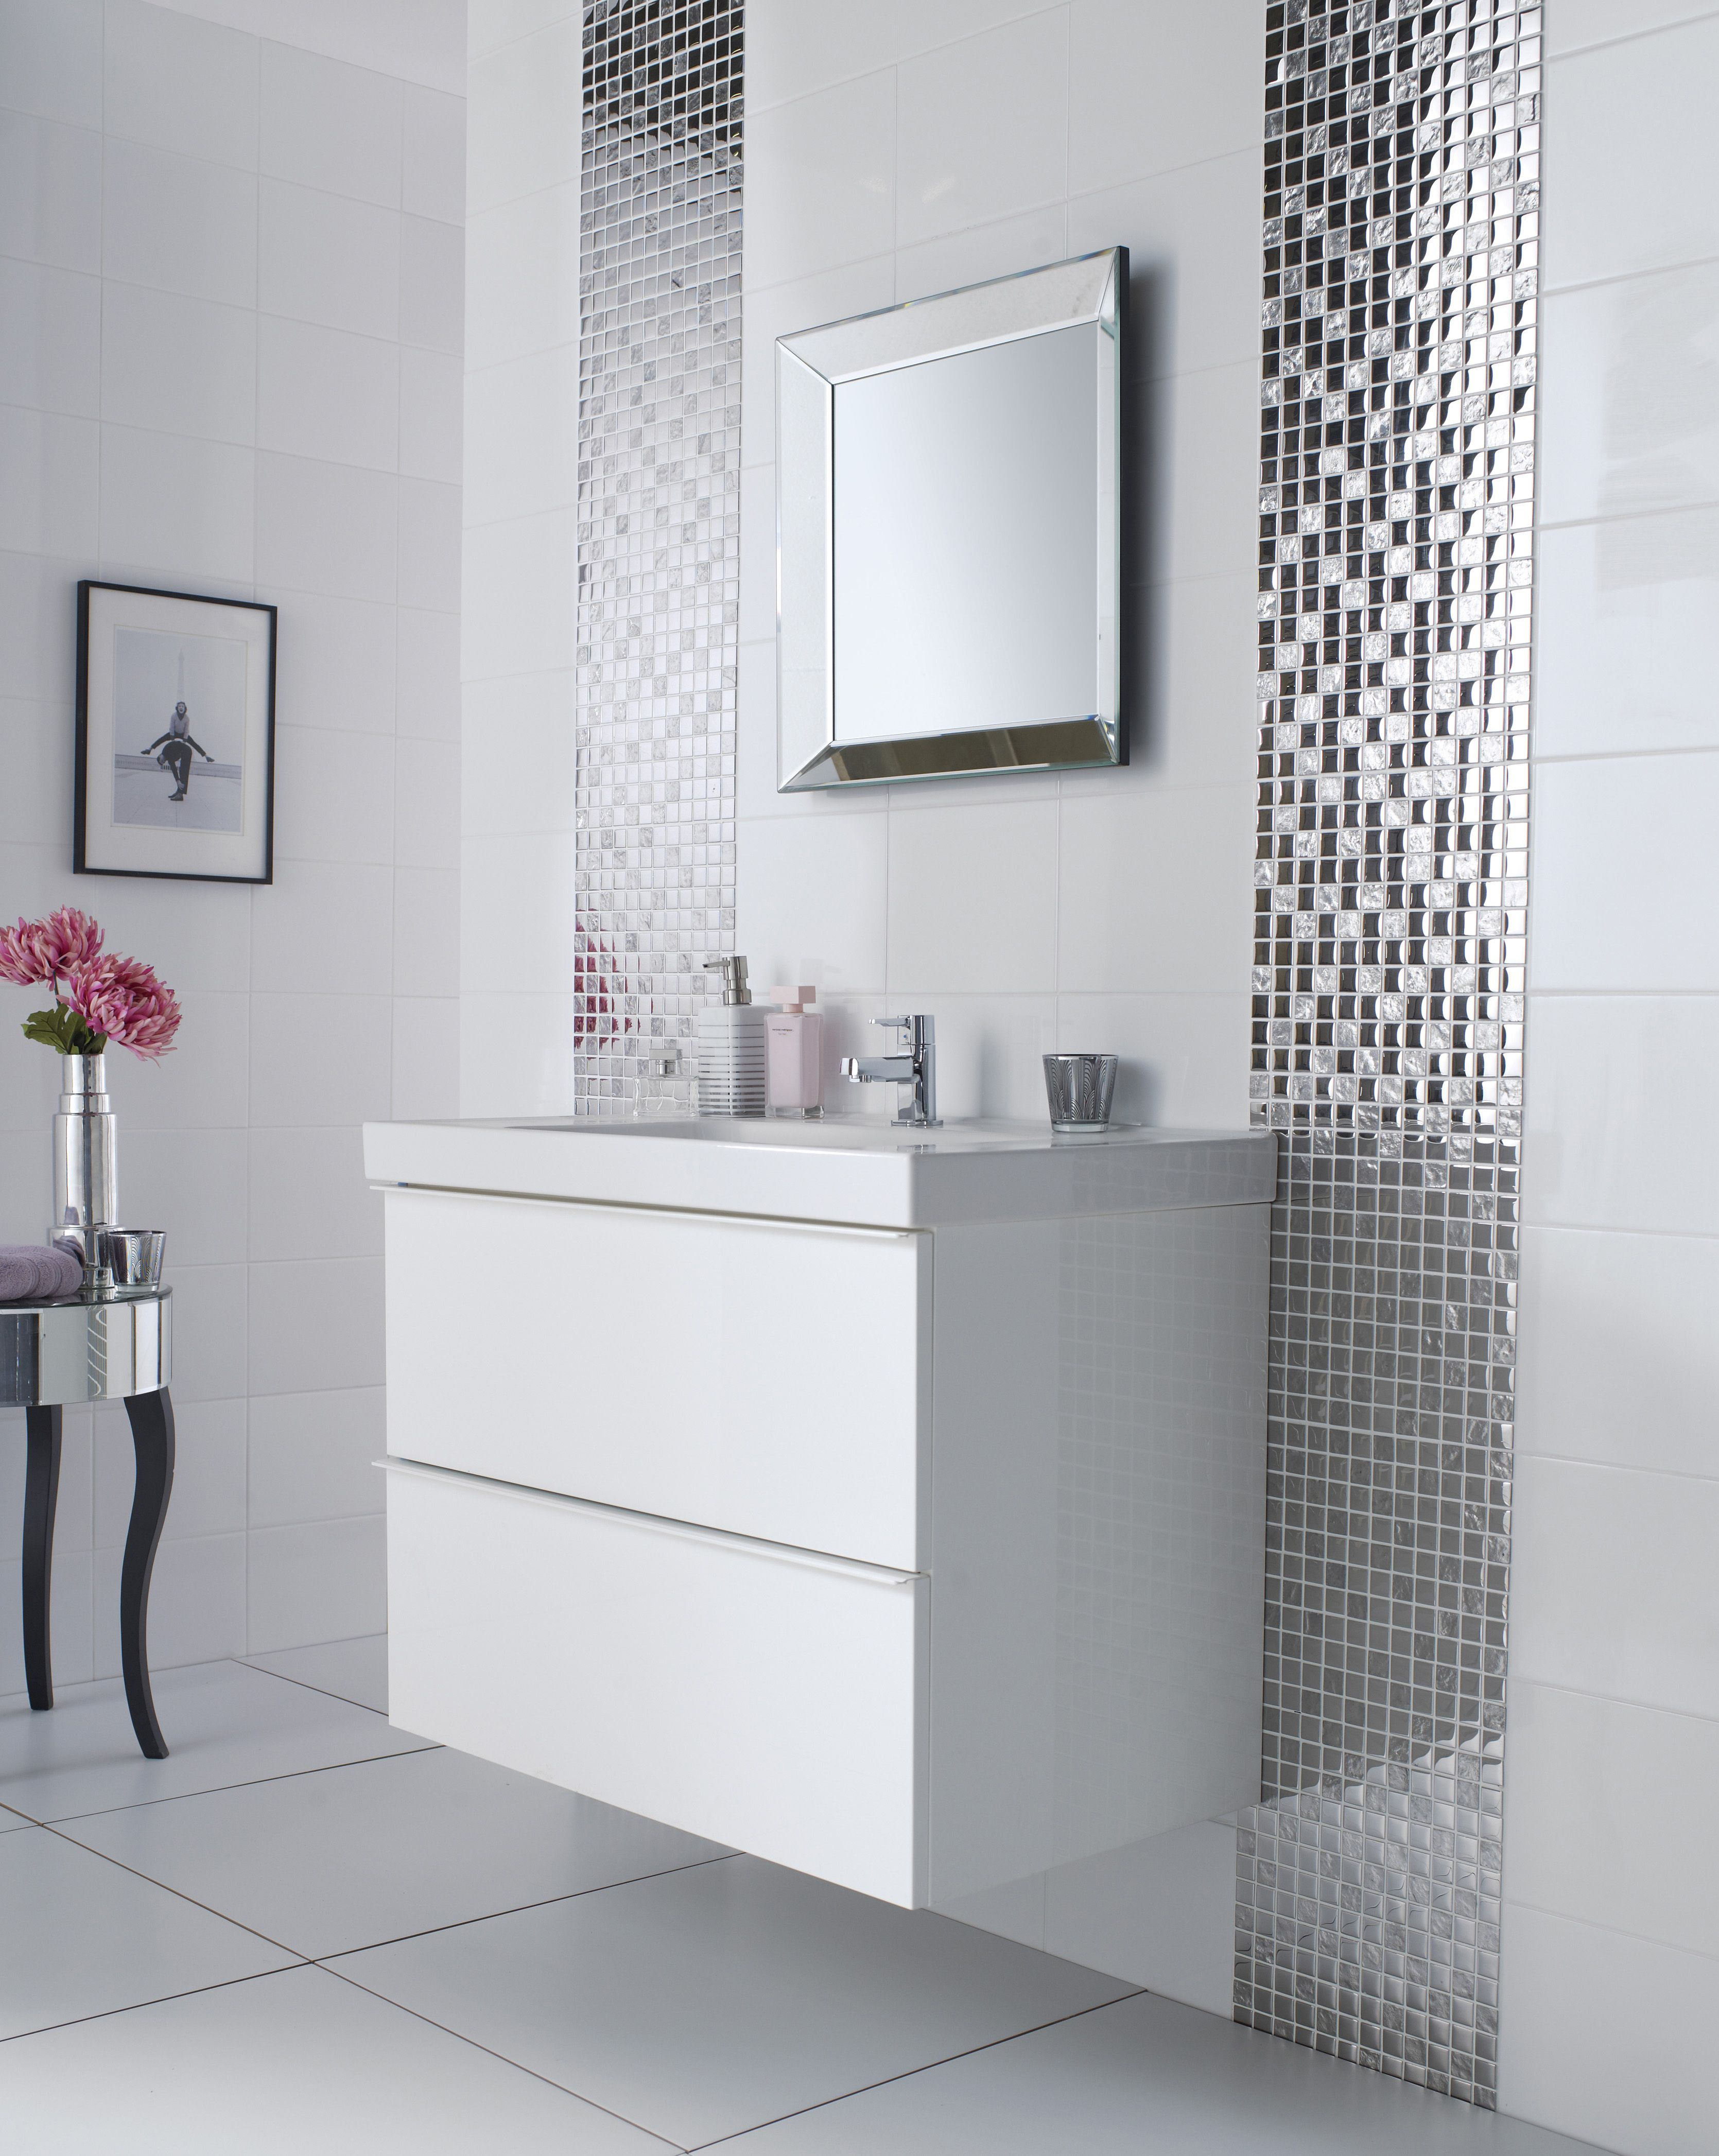 Rectified White Gloss Tile Topps Tiles Mosaic Bathroom Tile White Bathroom Tiles Mosaic Bathroom